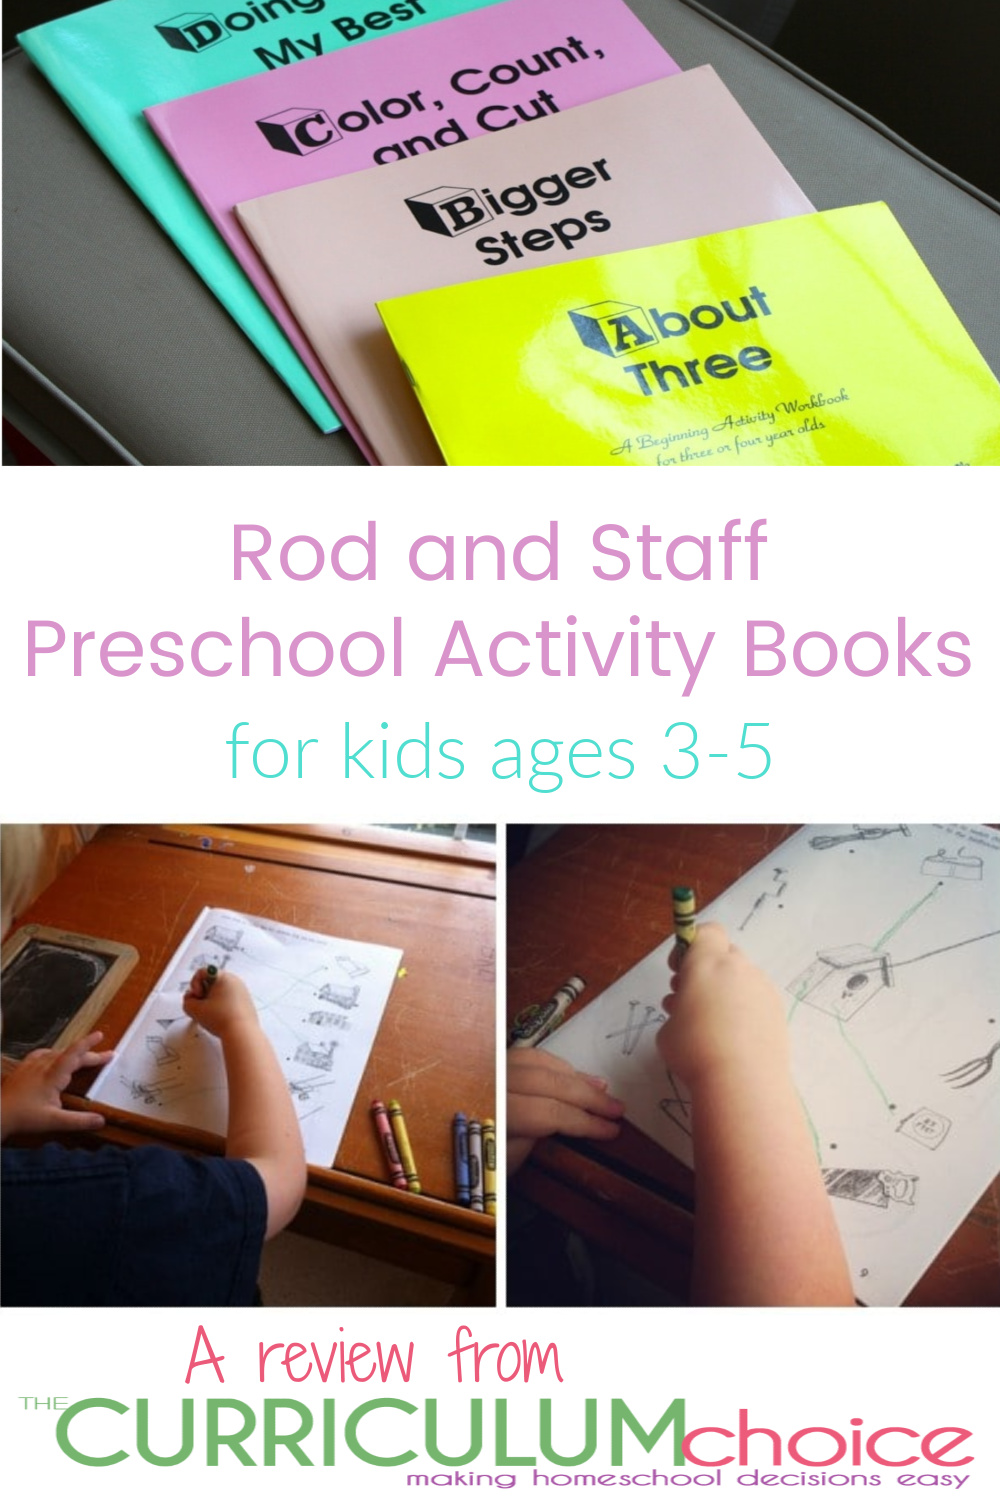 Rod and Staff Preschool Activity Books for kids ages 3-5 help build a good scholastic foundation for the preschool child. A review from The Curriculum Choice